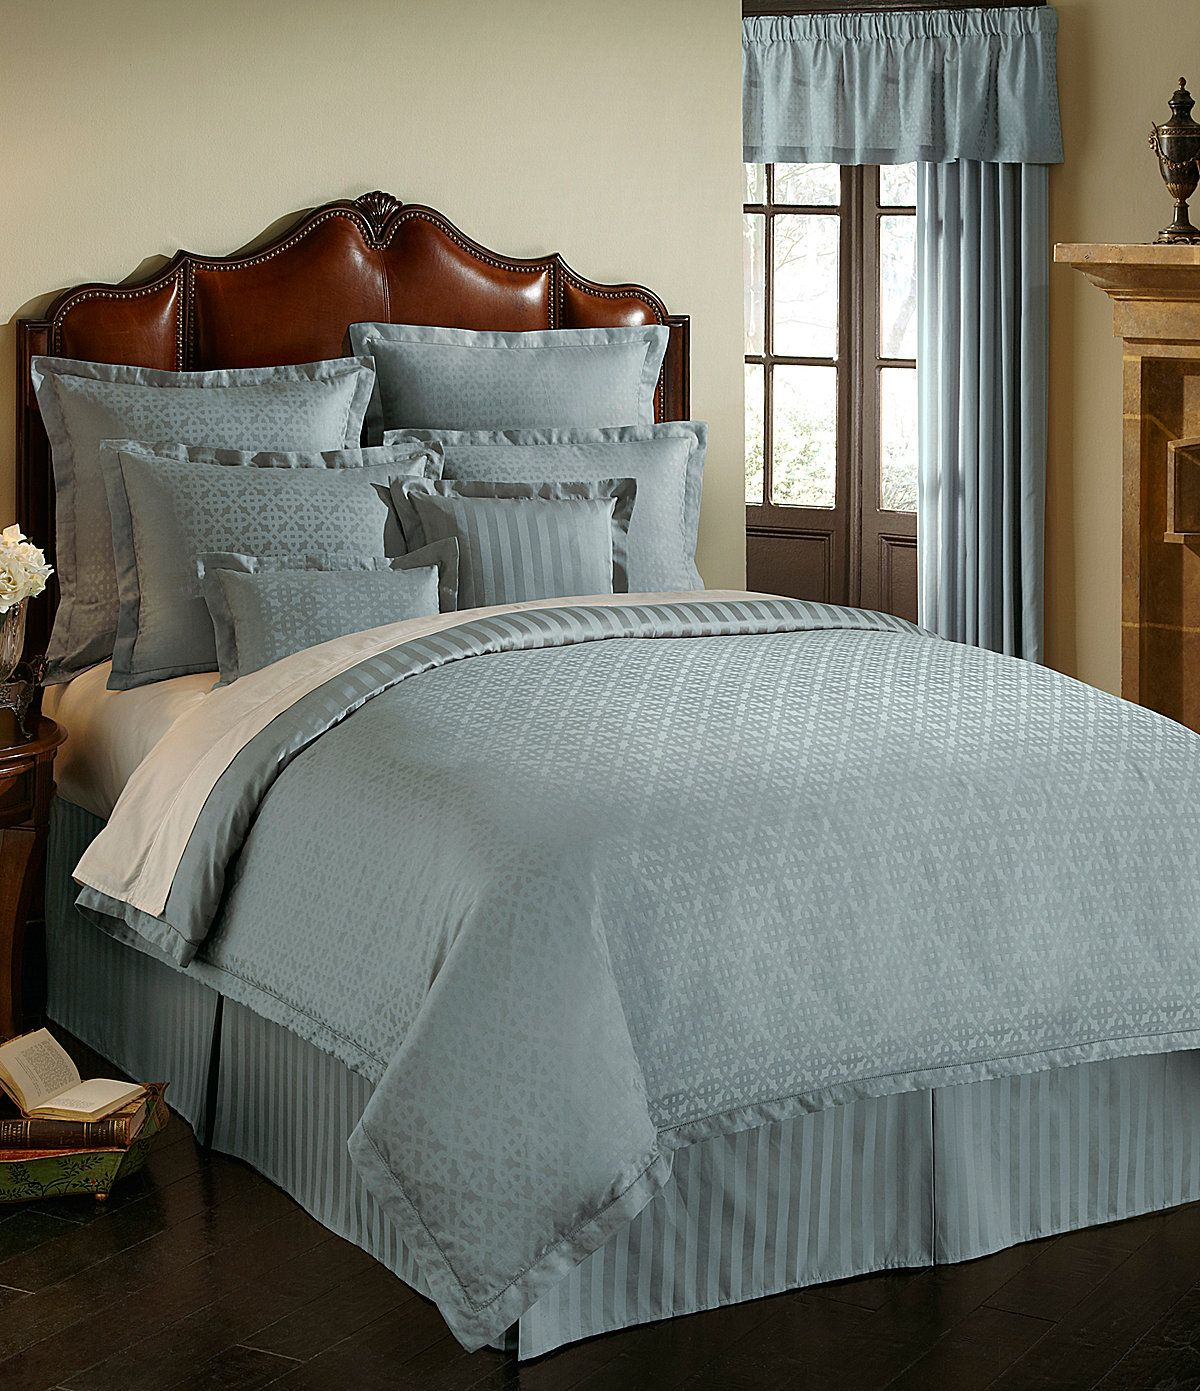 luxury hotel athena bedding collection new bedding pinterest bedding